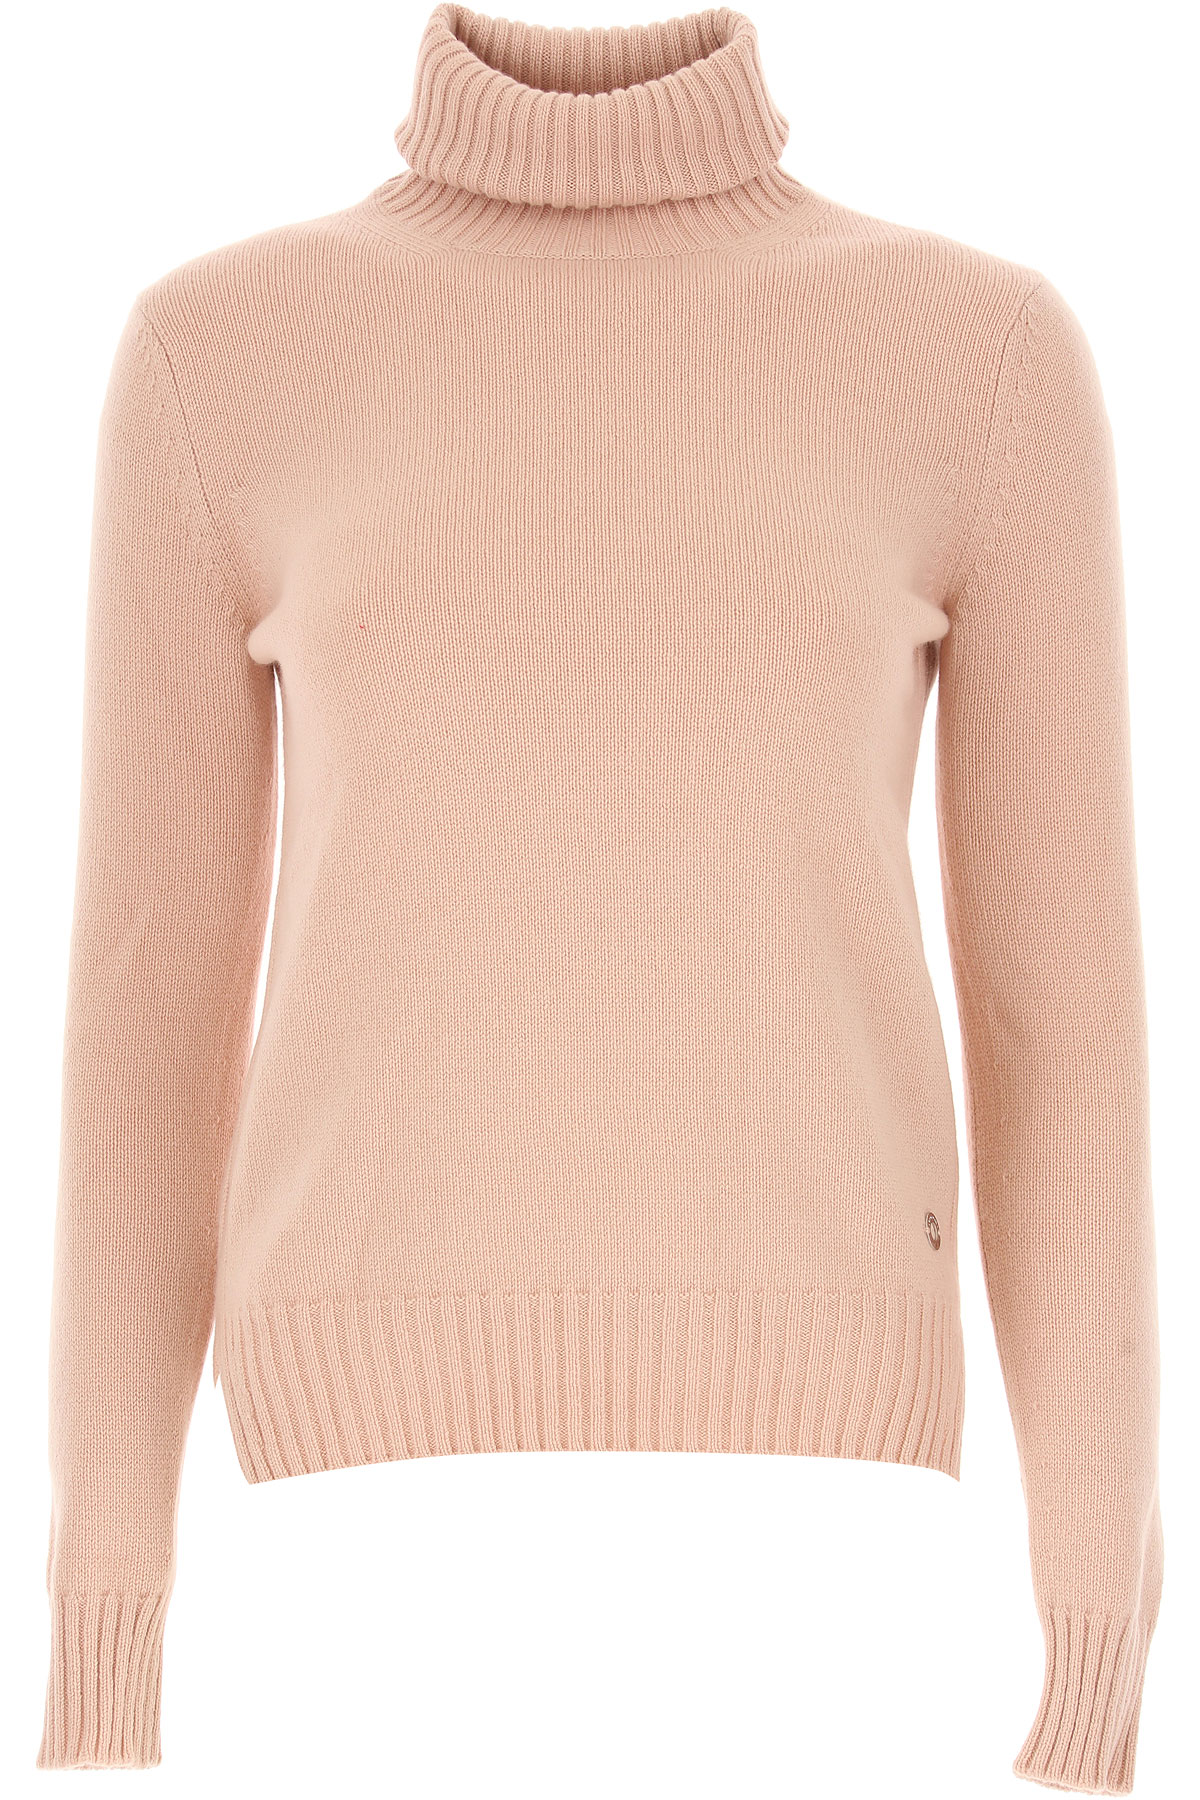 Image of Loro Piana Sweater for Women Jumper, Pink, Baby Cashmere, 2017, 2 4 6